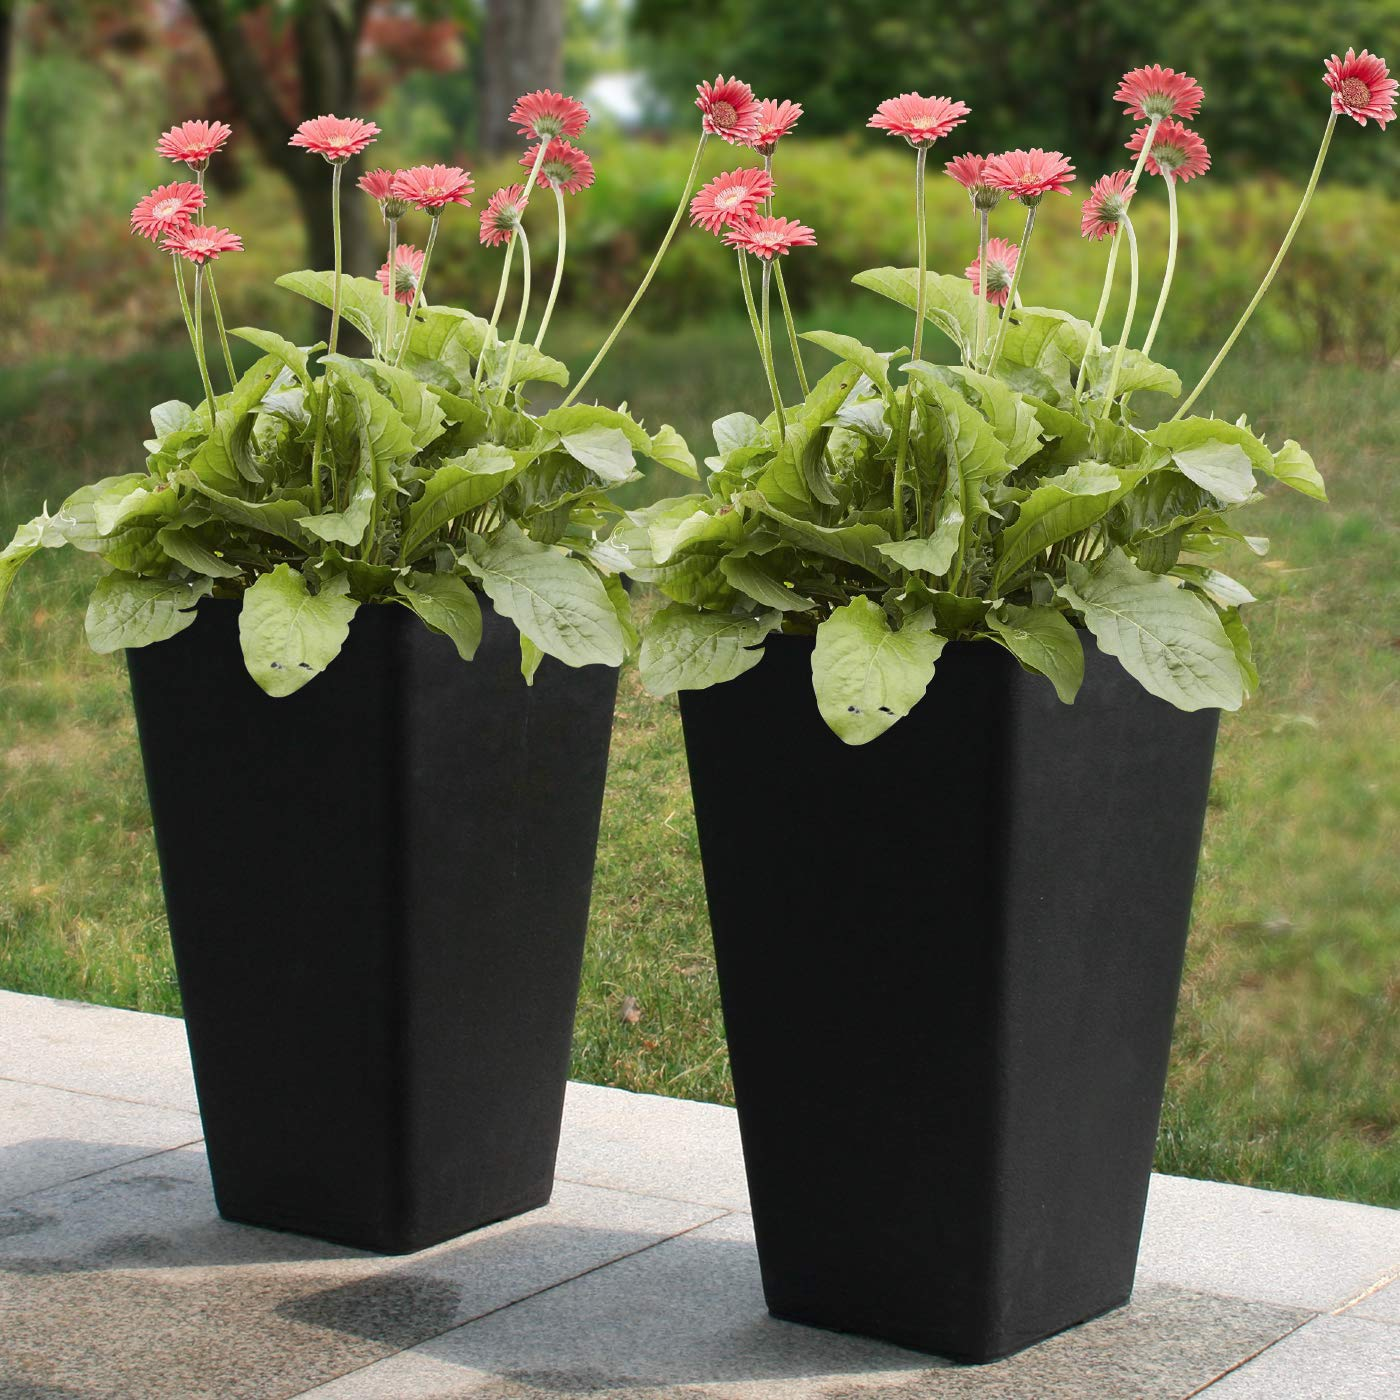 Tall Planters 20 Inch, Flower Pot Pack 2, Patio Deck Indoor Outdoor Garden Tree Resin Planters Black